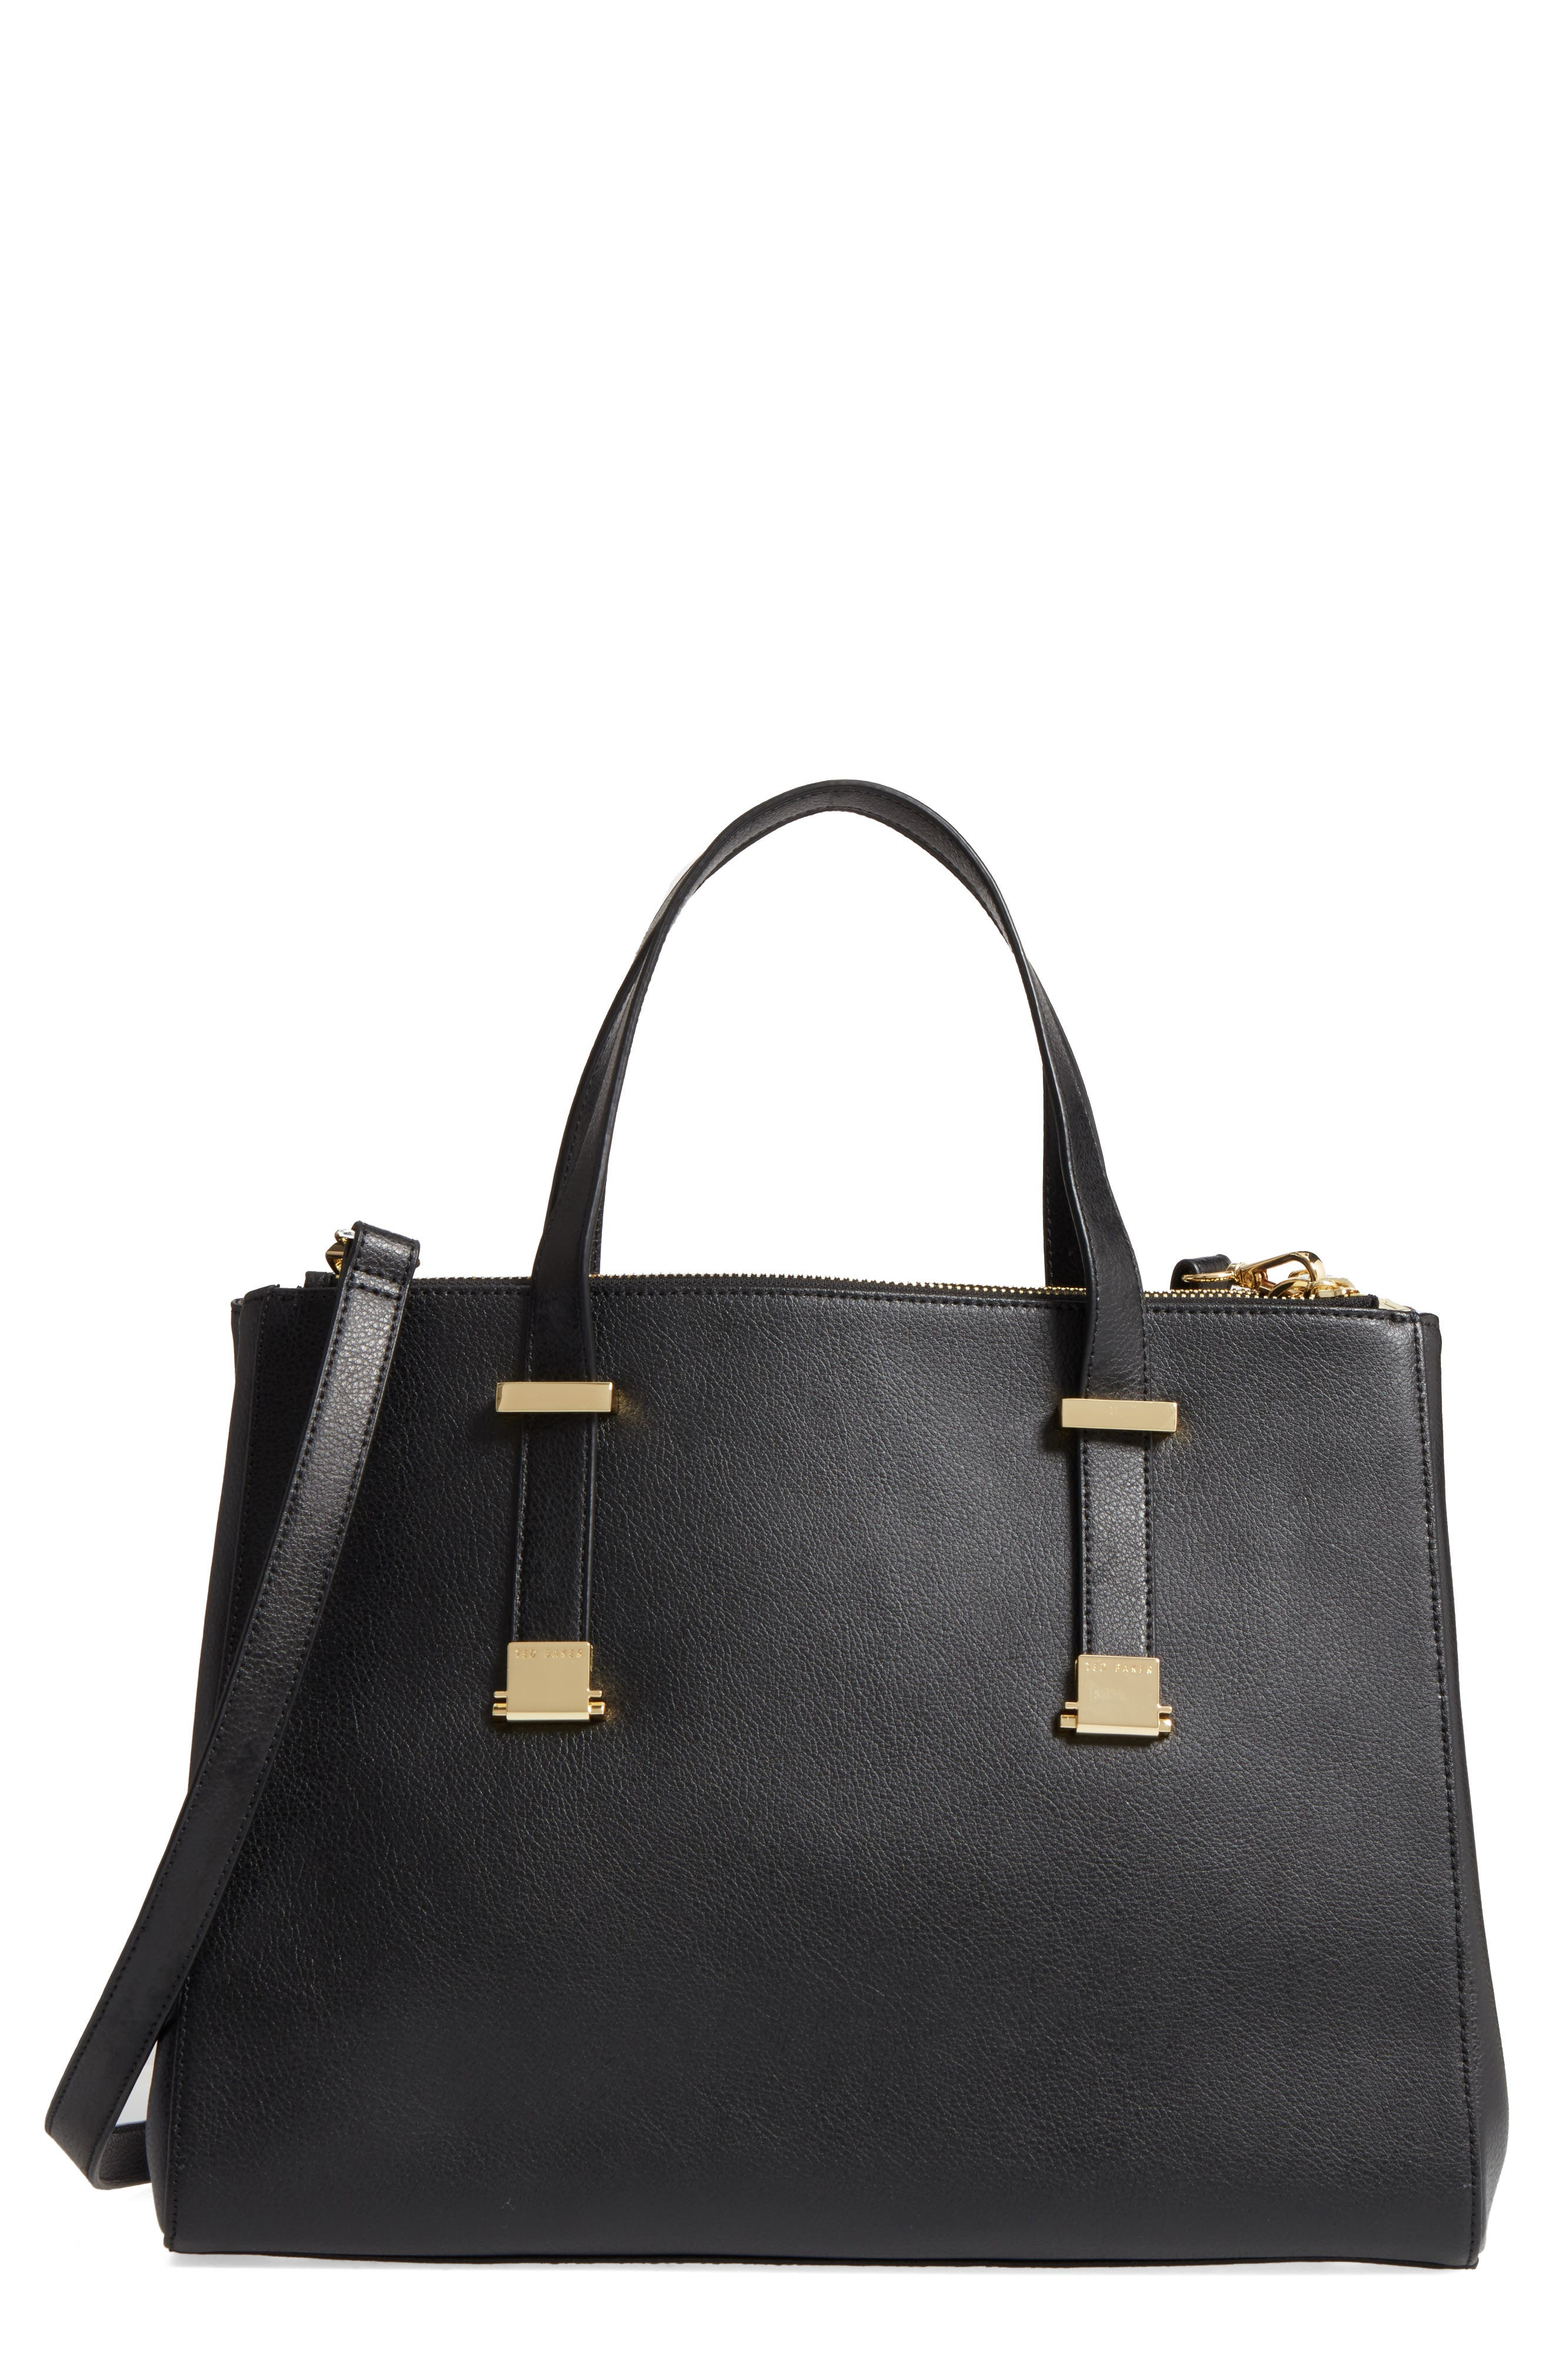 Ted Baker London Large Alunaa Convertible Leather Tote